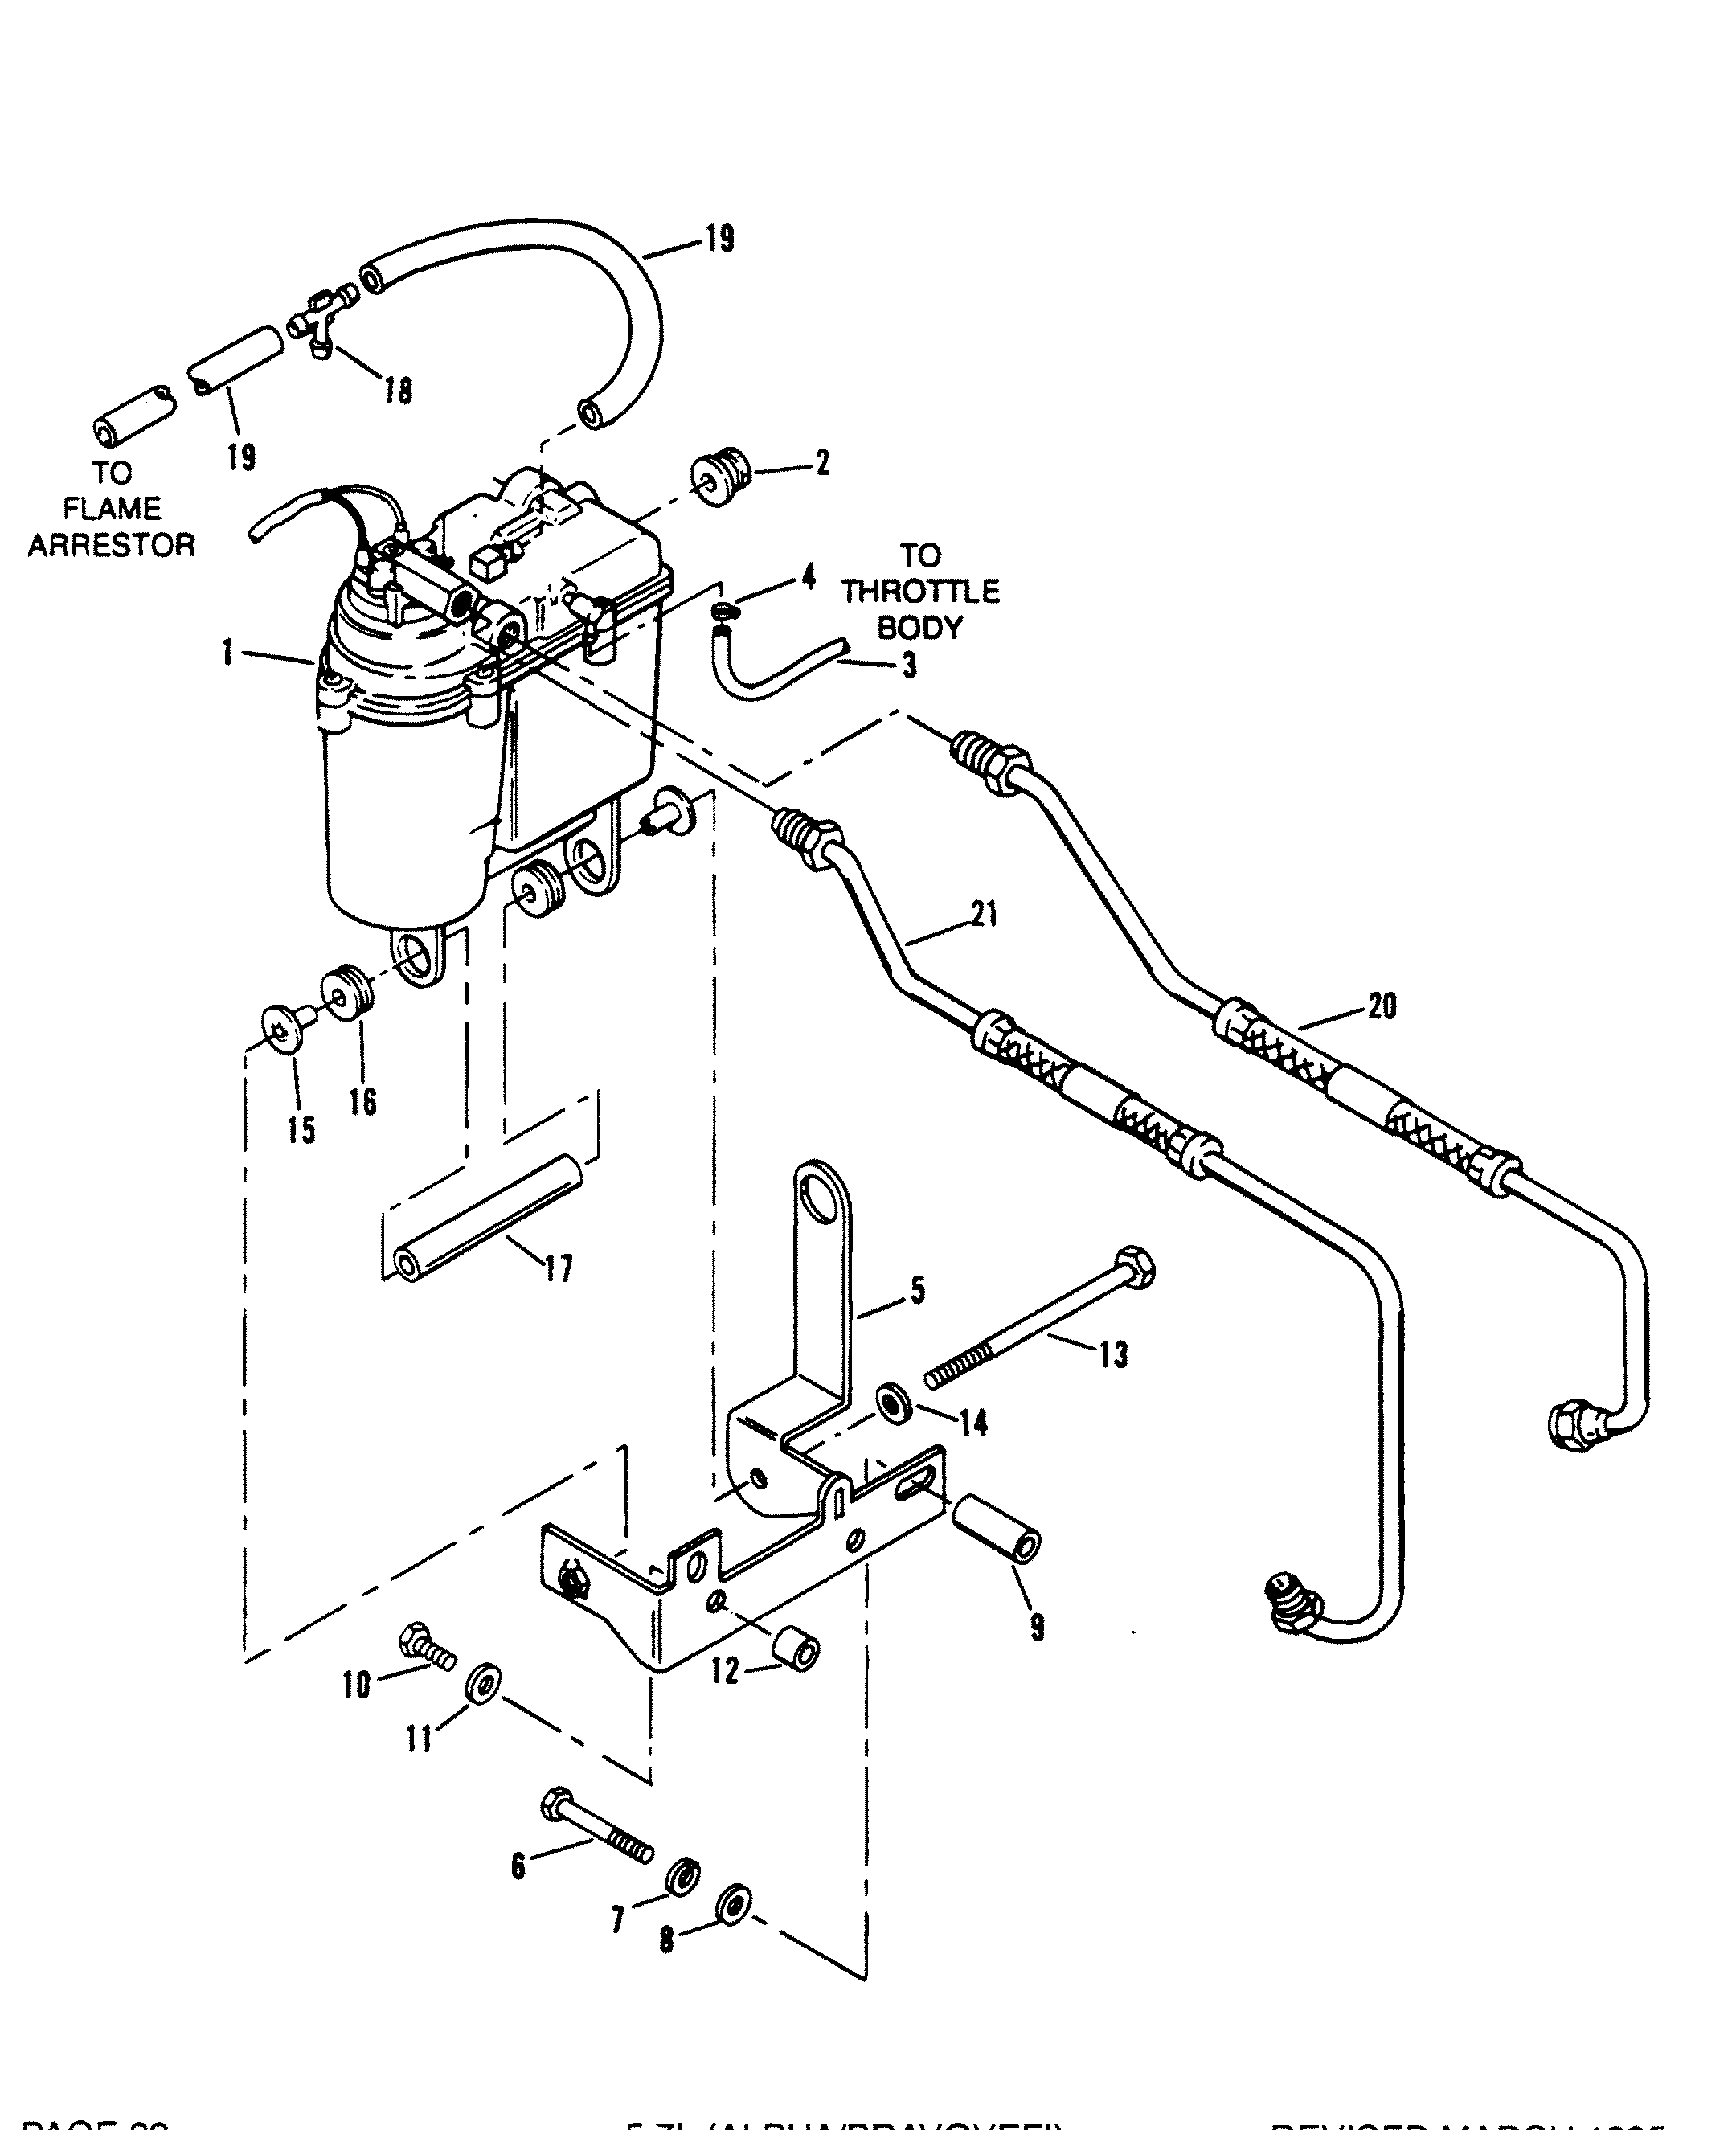 Show product 95 jeep cherokee wiring diagram at w freeautoresponder co